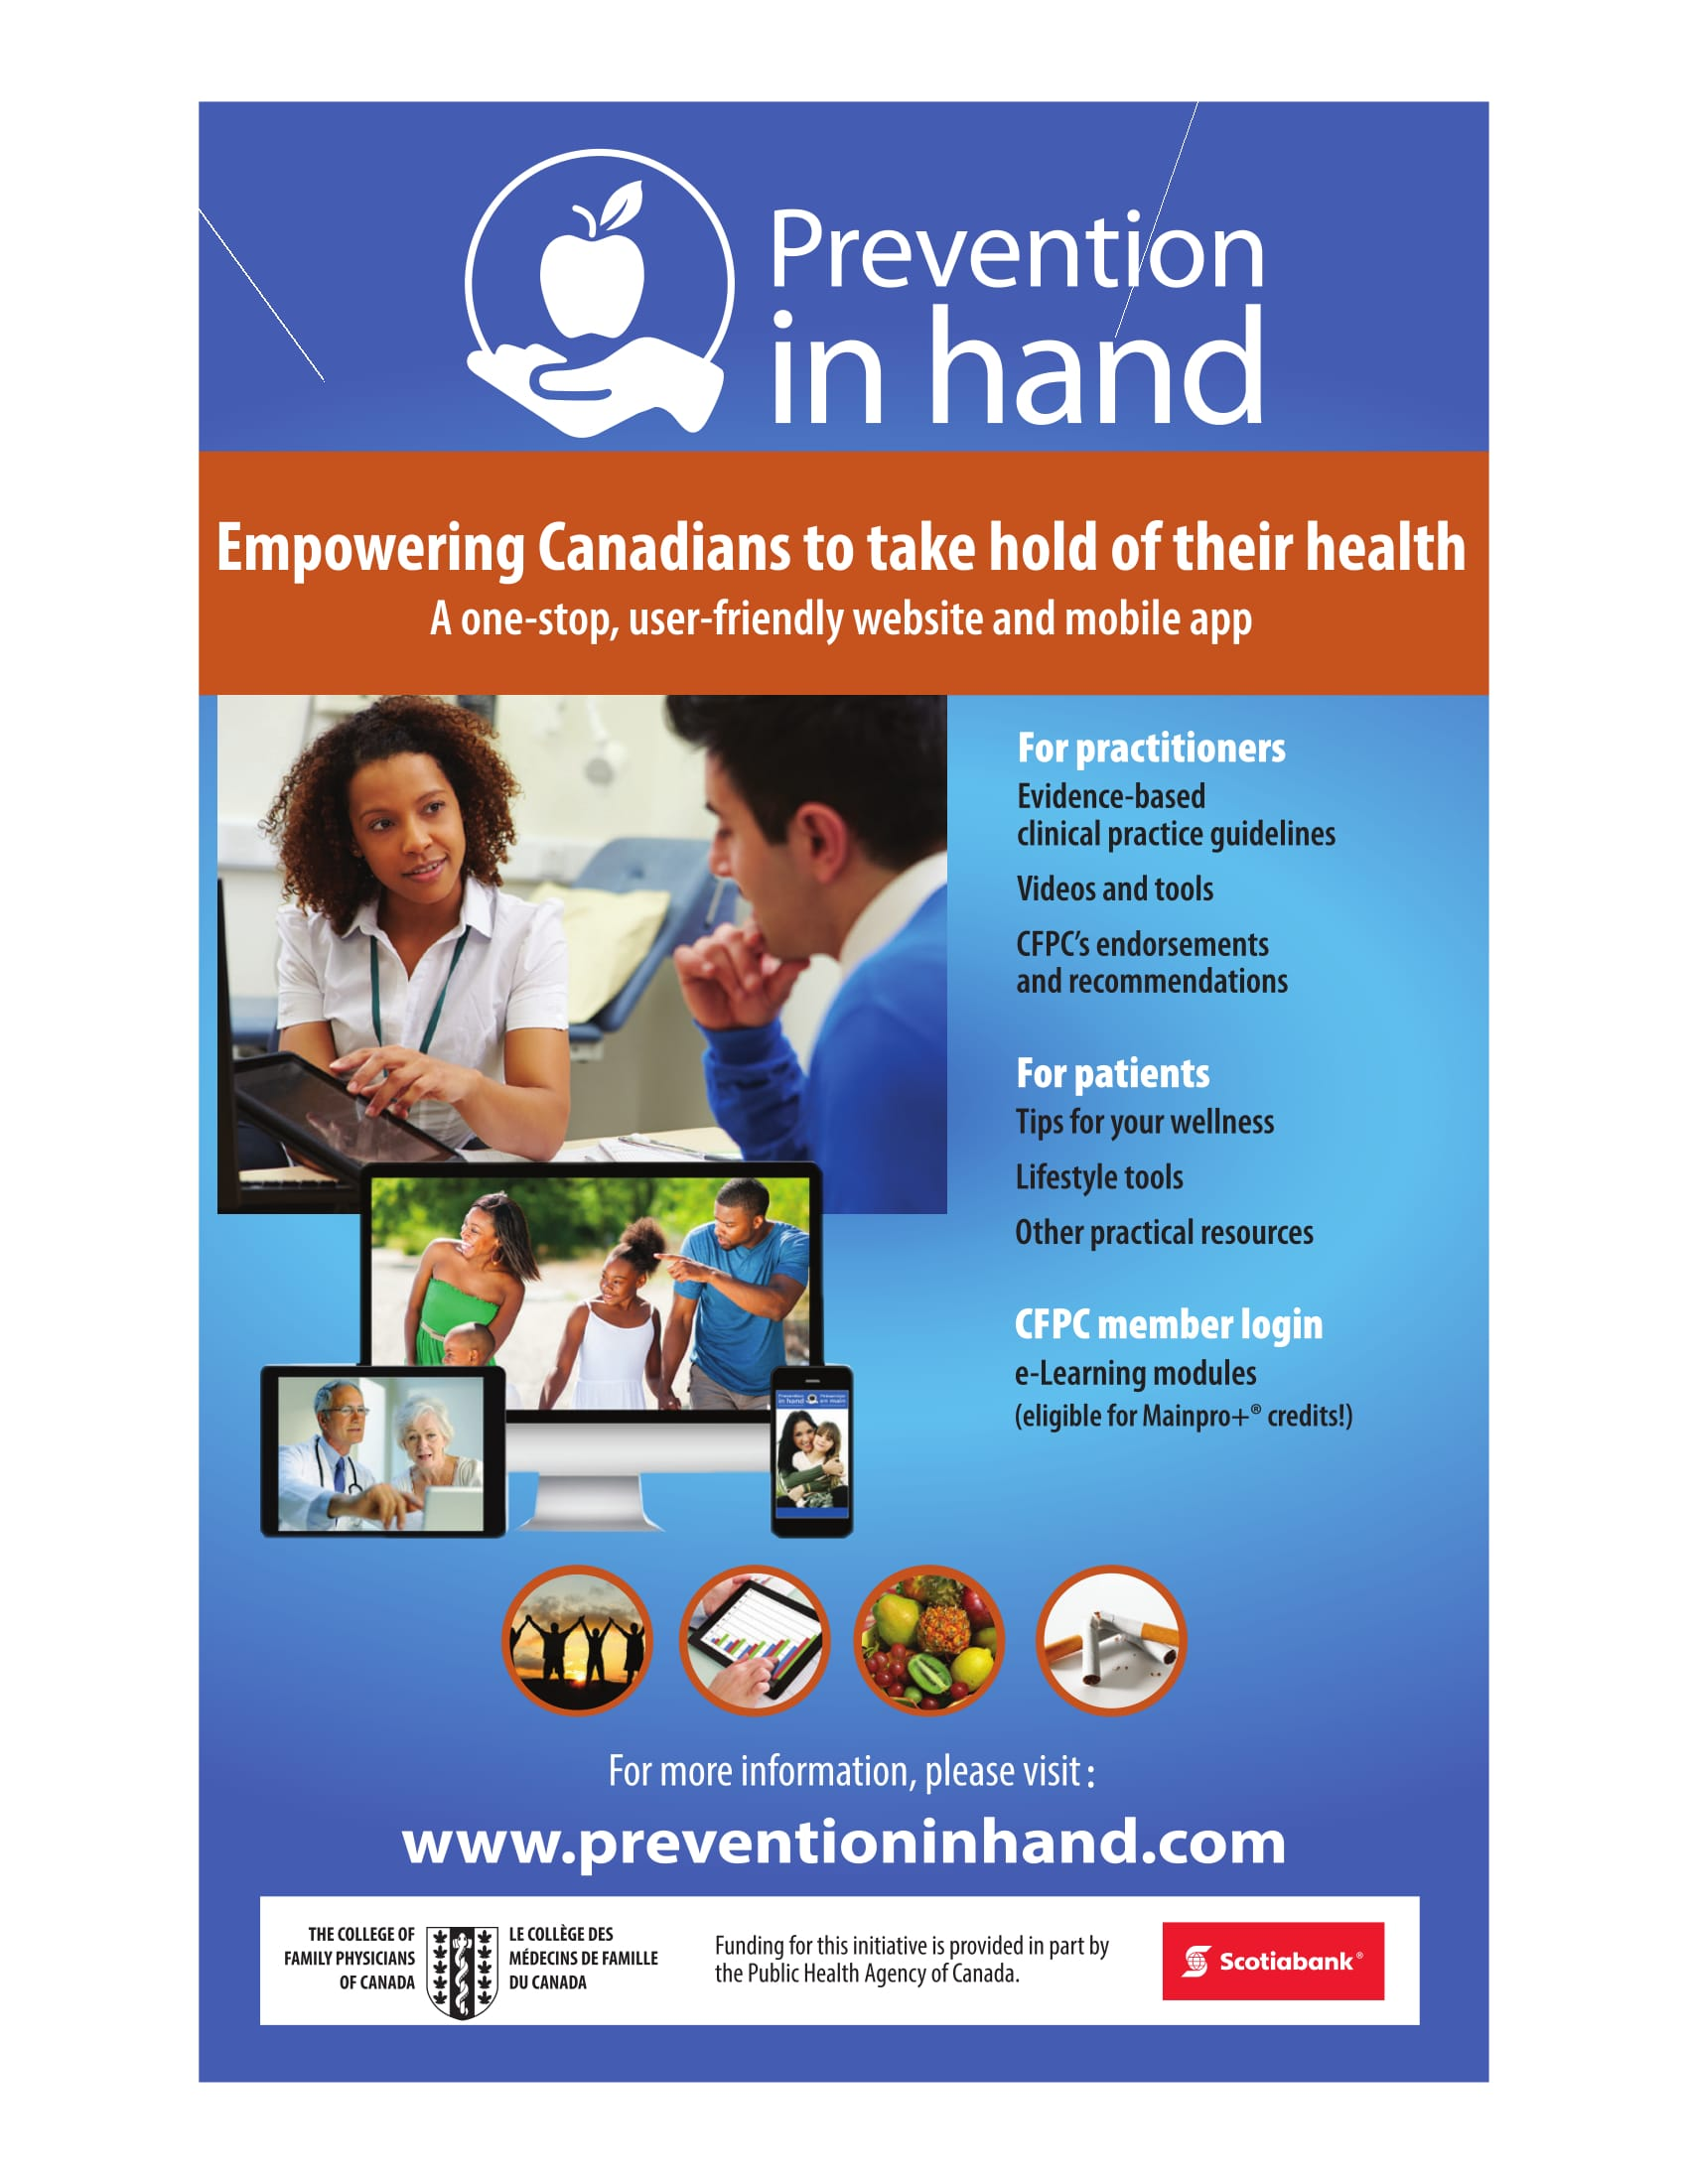 Prevention in Hand